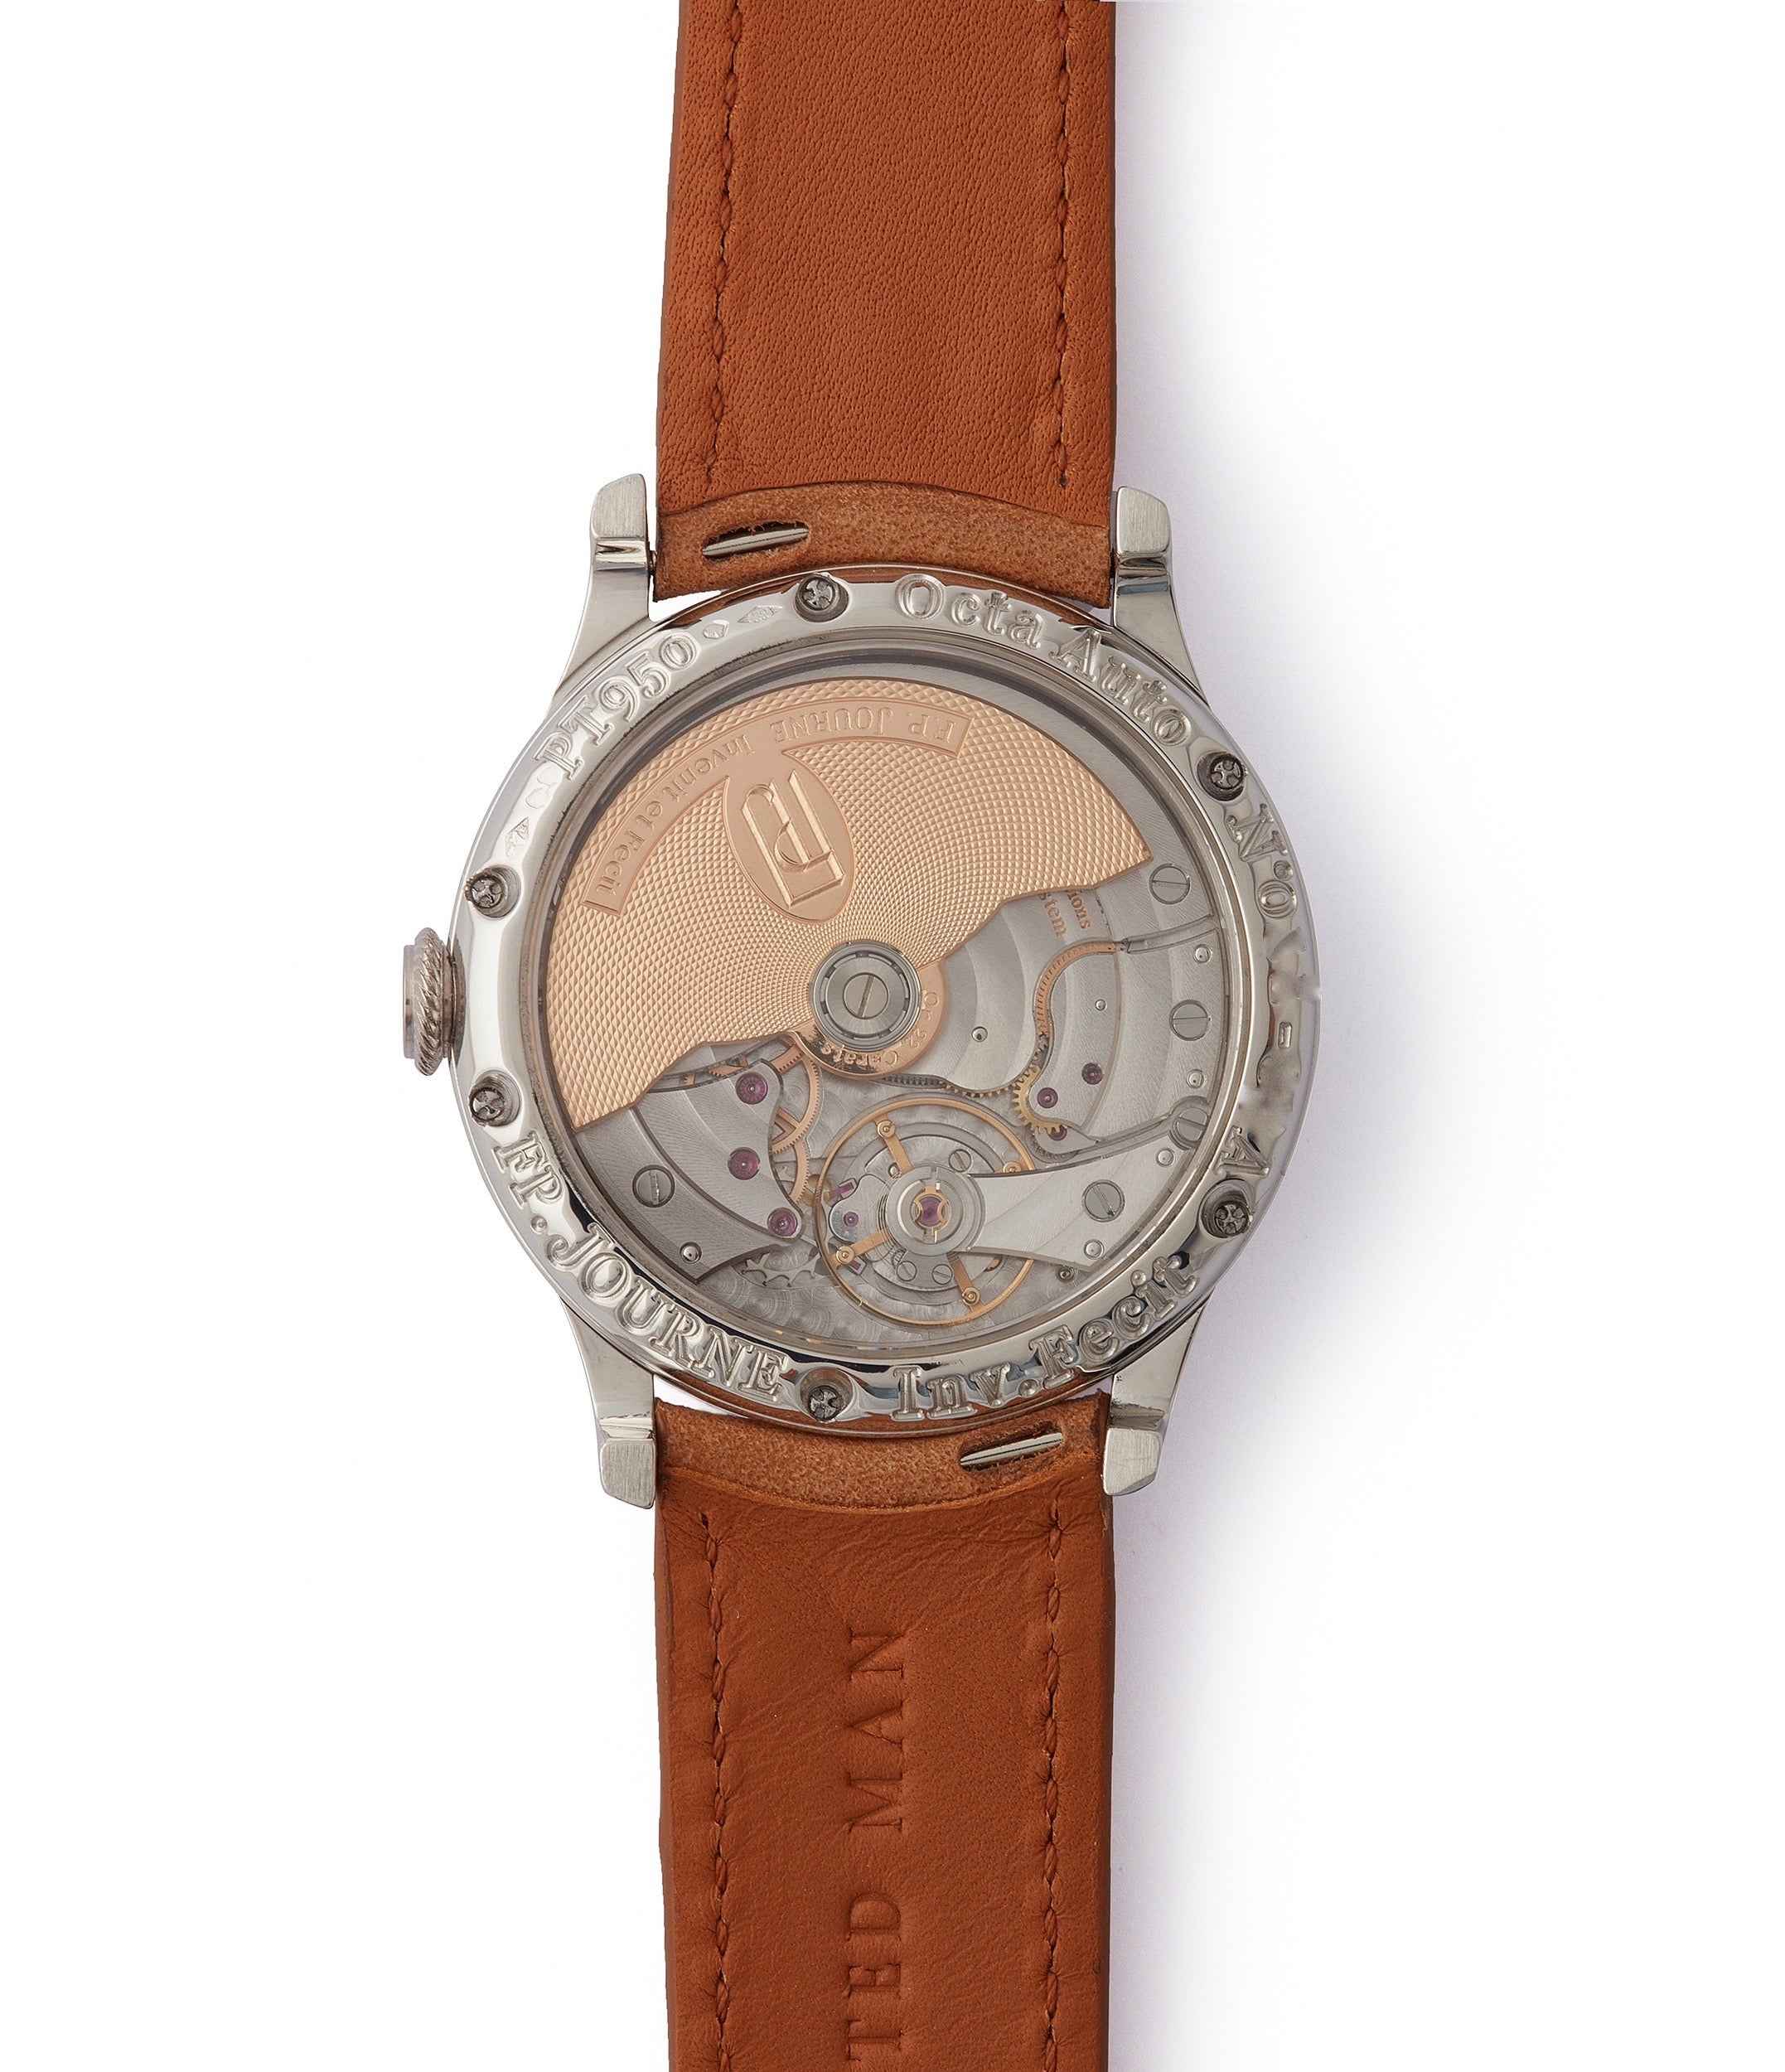 early brass movement F.P. Journe Octa Reserve de Marche 38mm platinum dress watch for sale online at A Collected Man London UK specialist of independent watchmakers